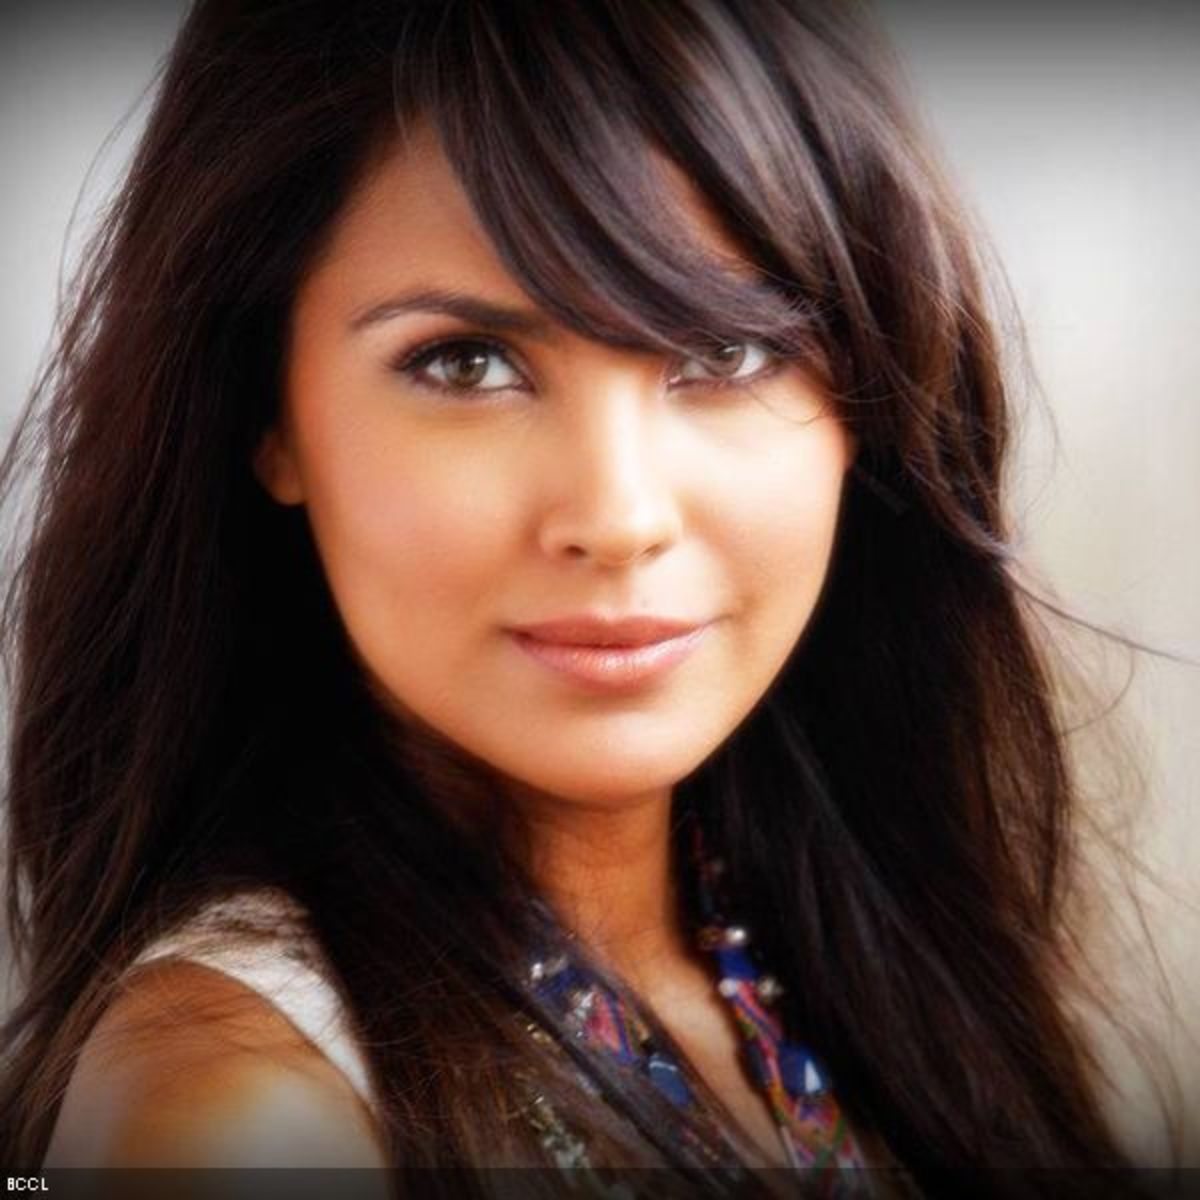 Lara Dutta Bhupathi of India was crowned Miss Intercontinental 1997 and Miss Universe in 2000.  She graduated with a degree in economics from the University of Mumbai.